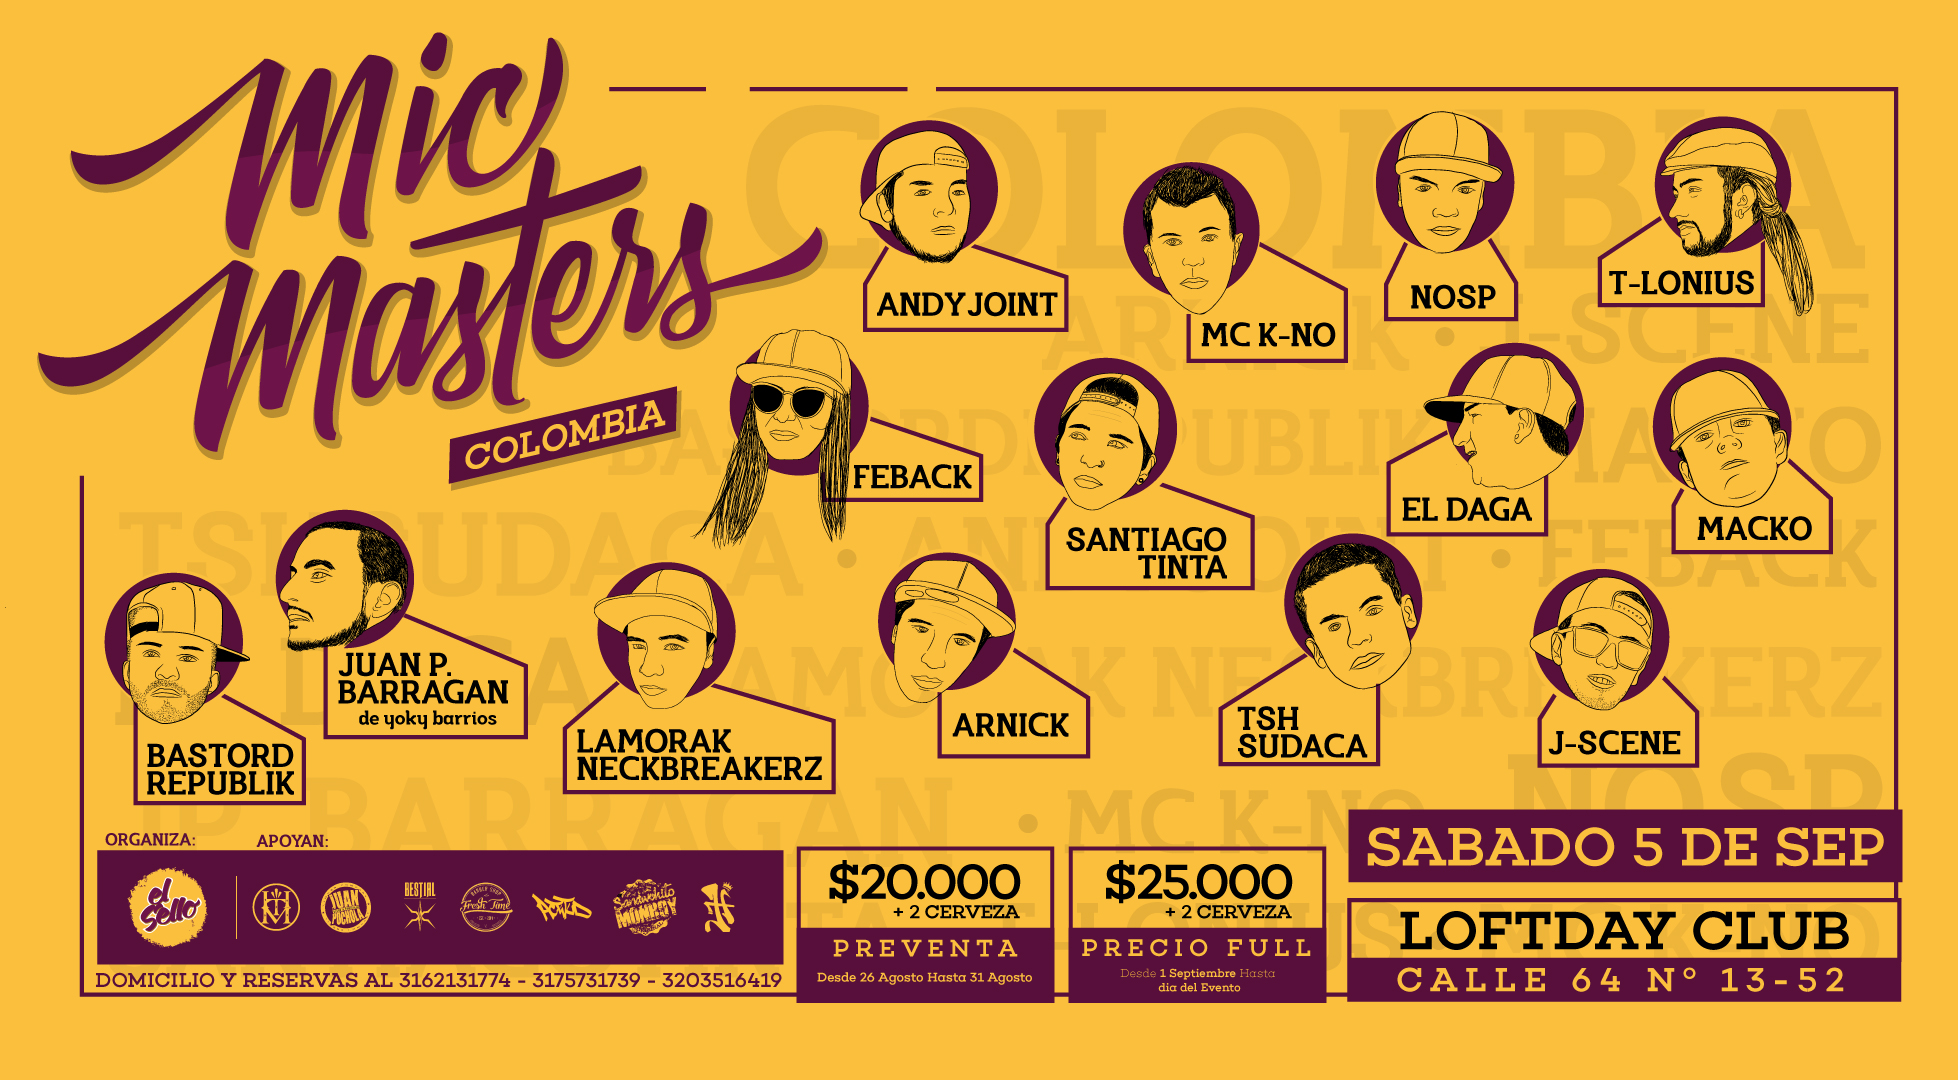 mic-masters_Flyer